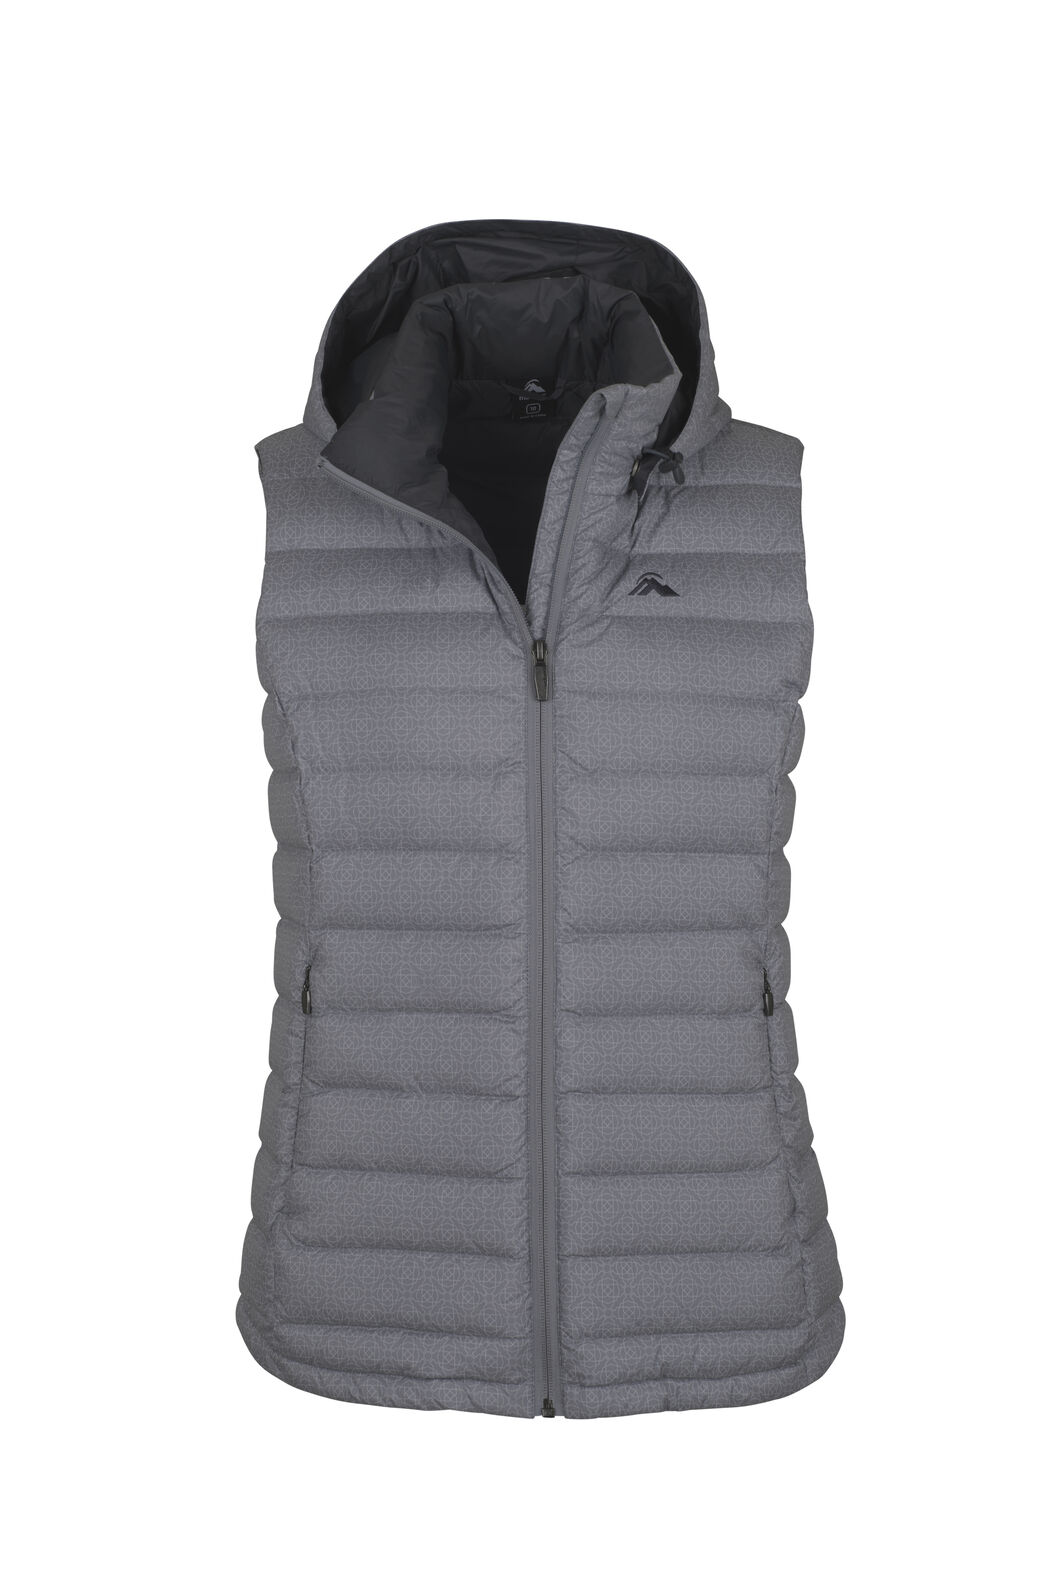 Macpac Zodiac Hooded Down Vest - Women's, Monument Tile, hi-res